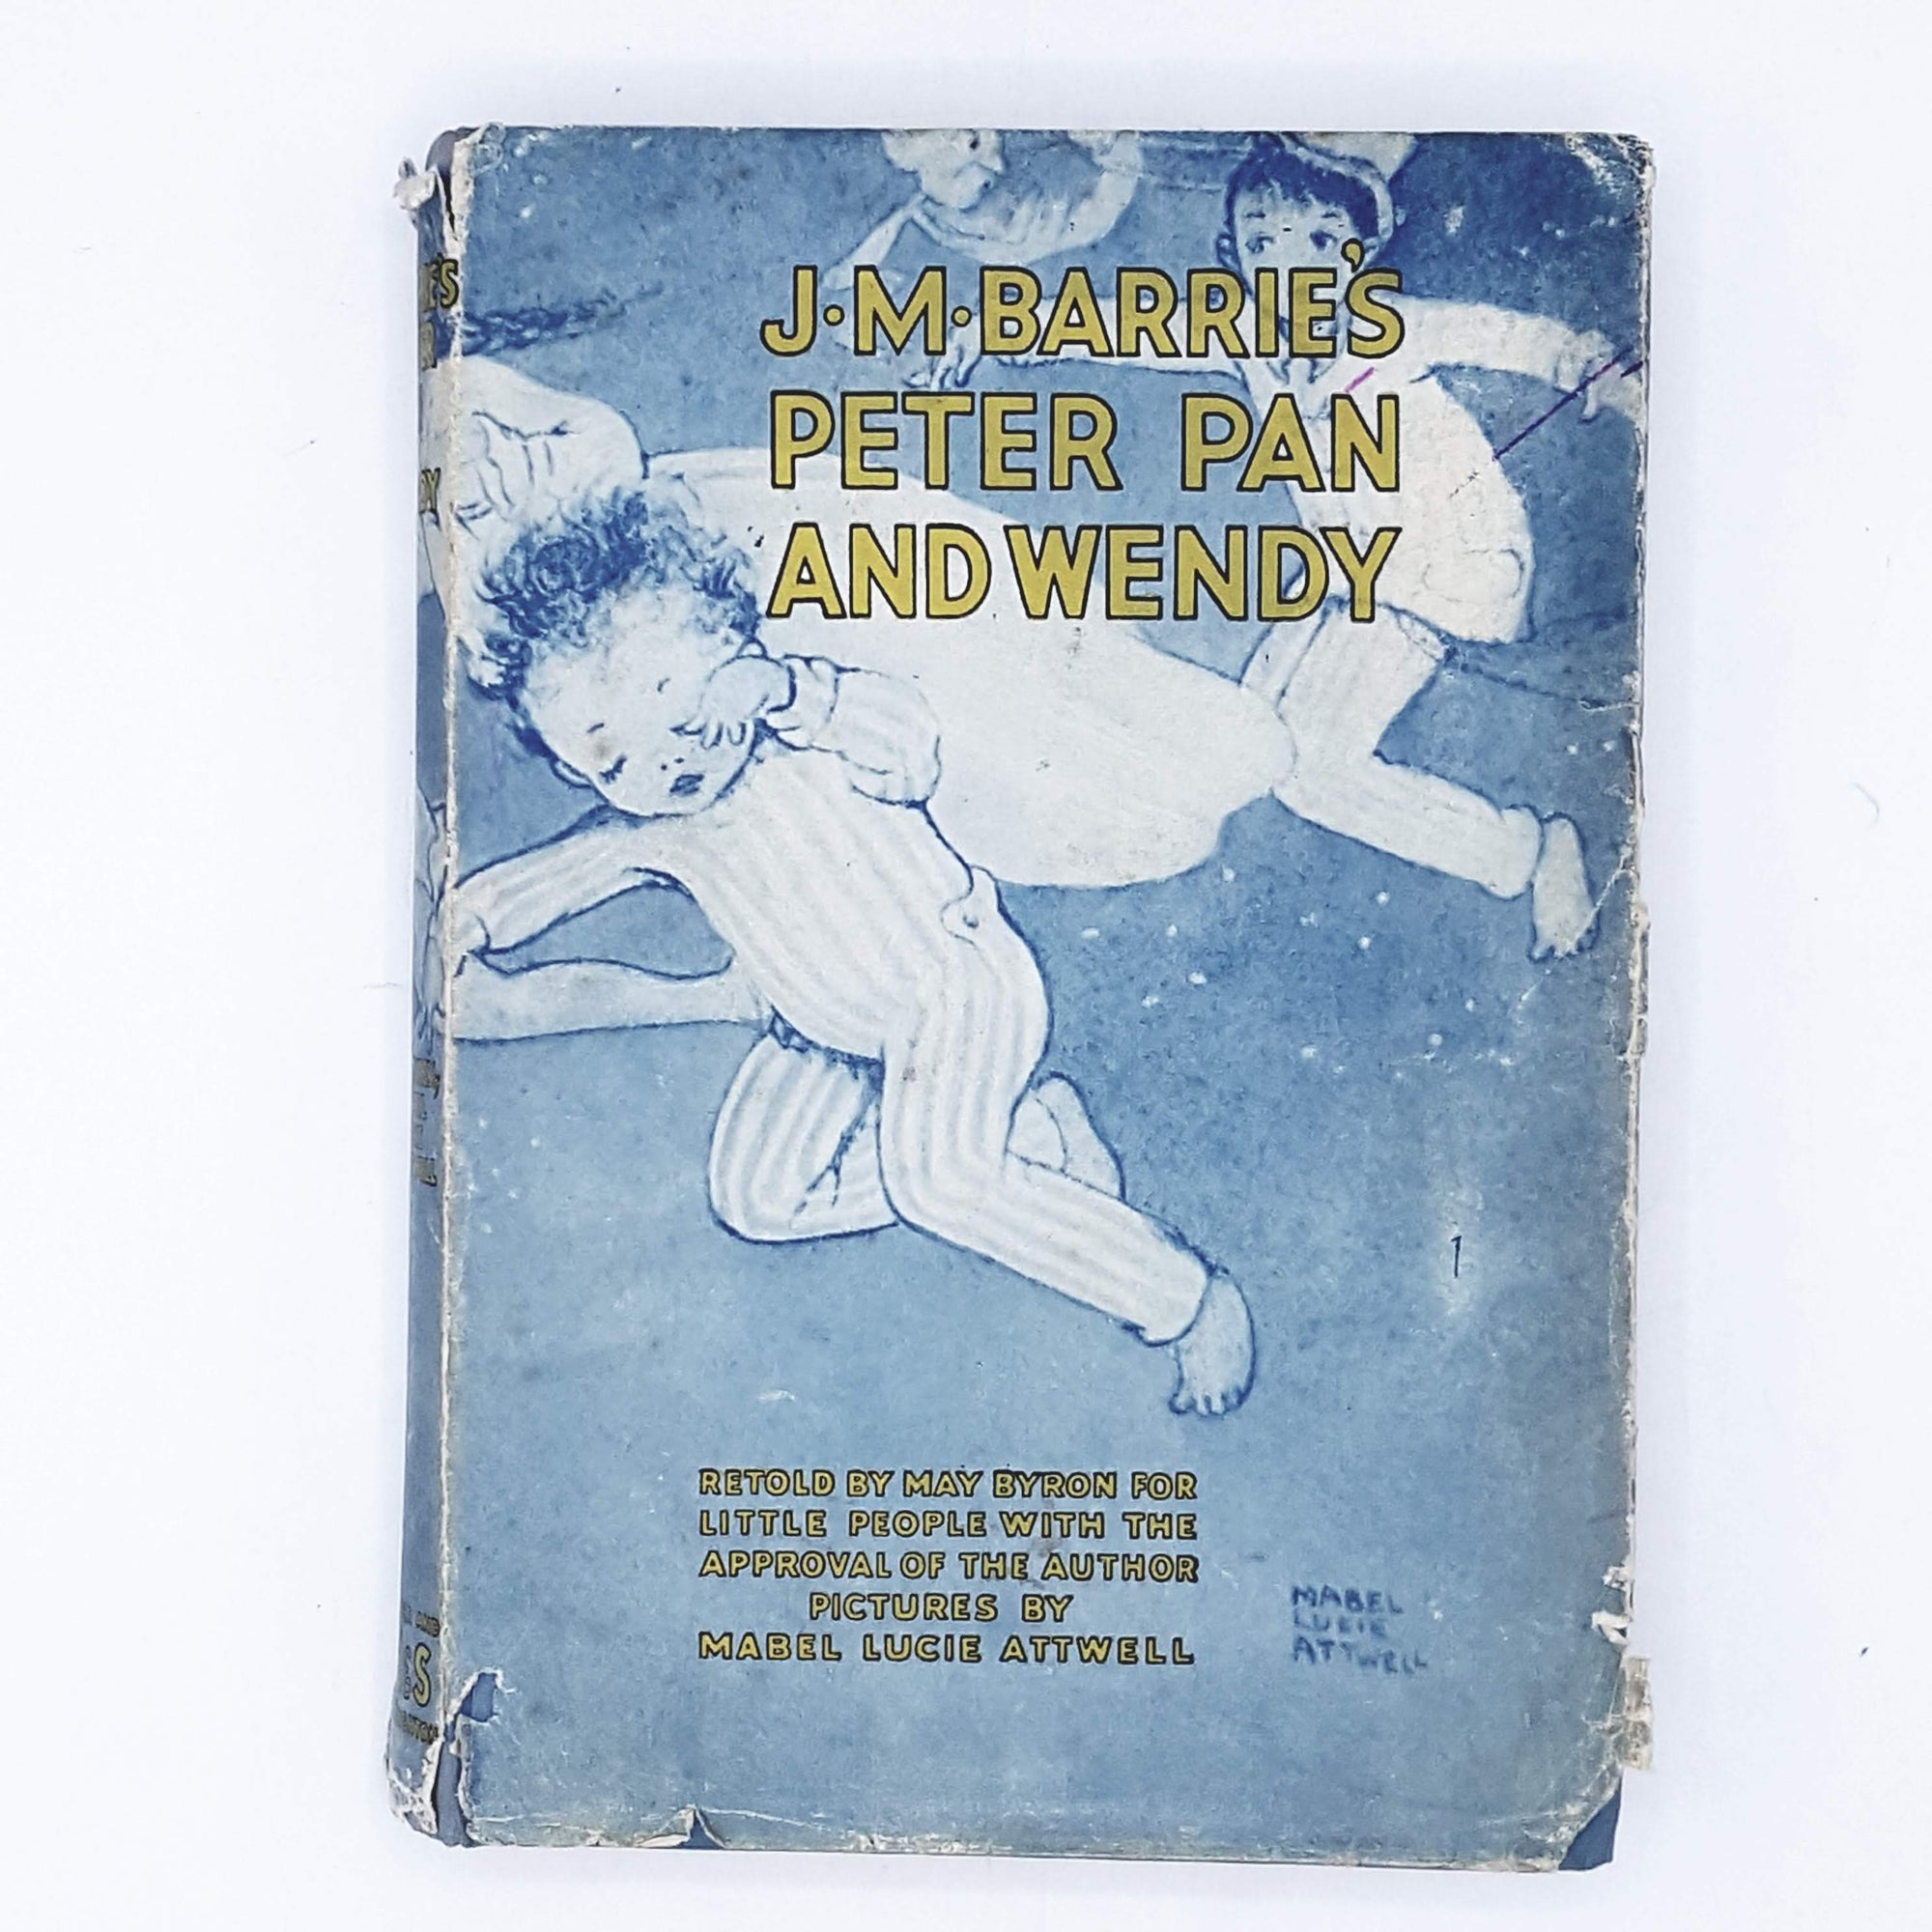 Peter Pan and Wendy by J. M. Barrie retold by May Bryon